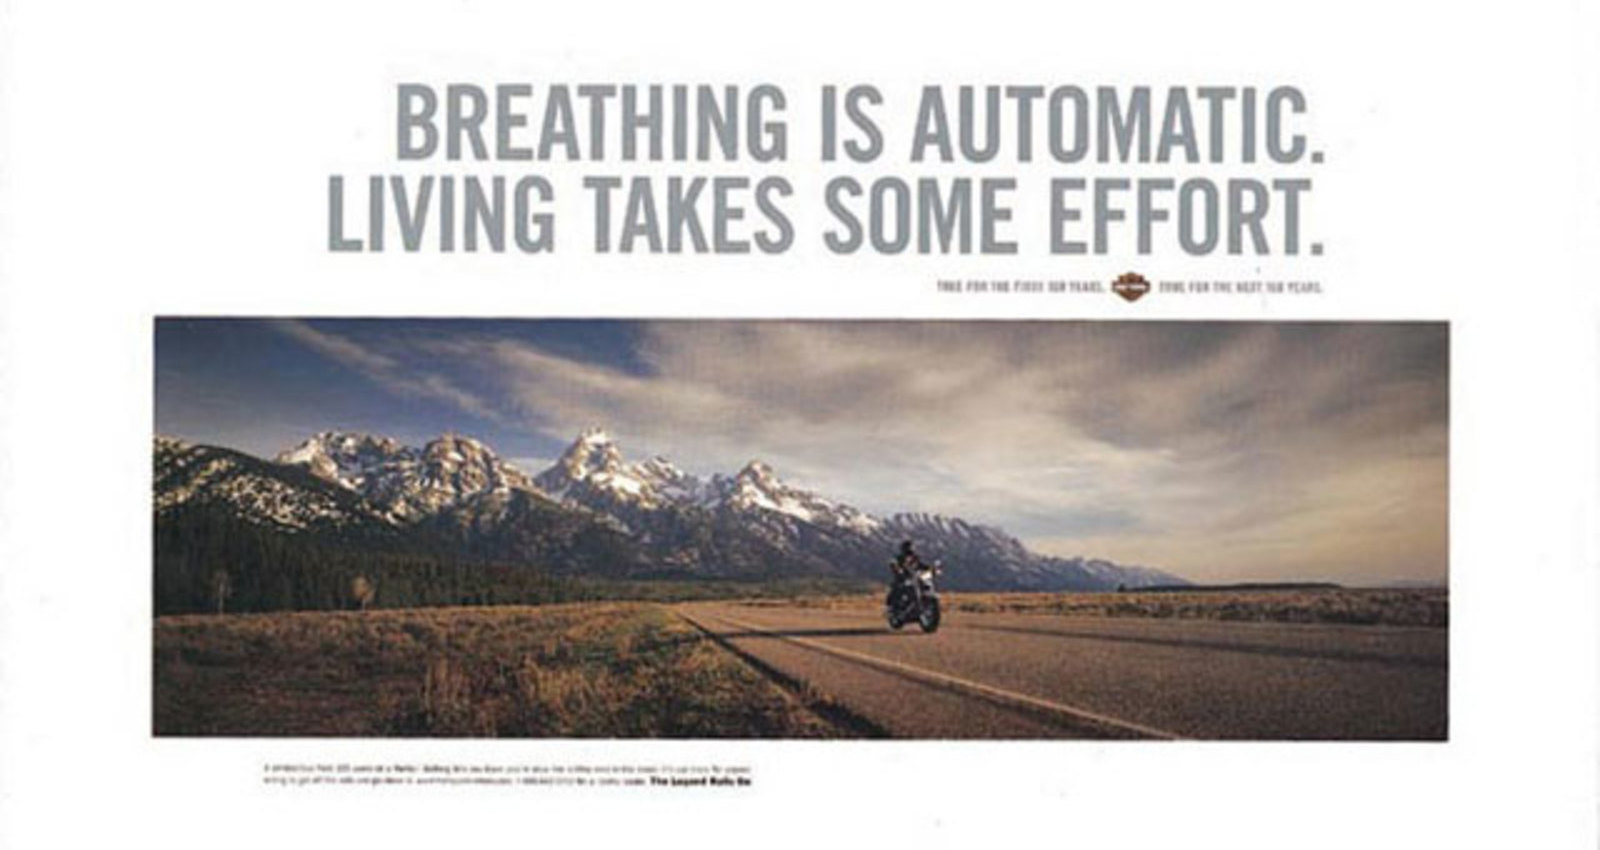 Breathing is Automatic, .Lewis & Clark, The Road is Eternal